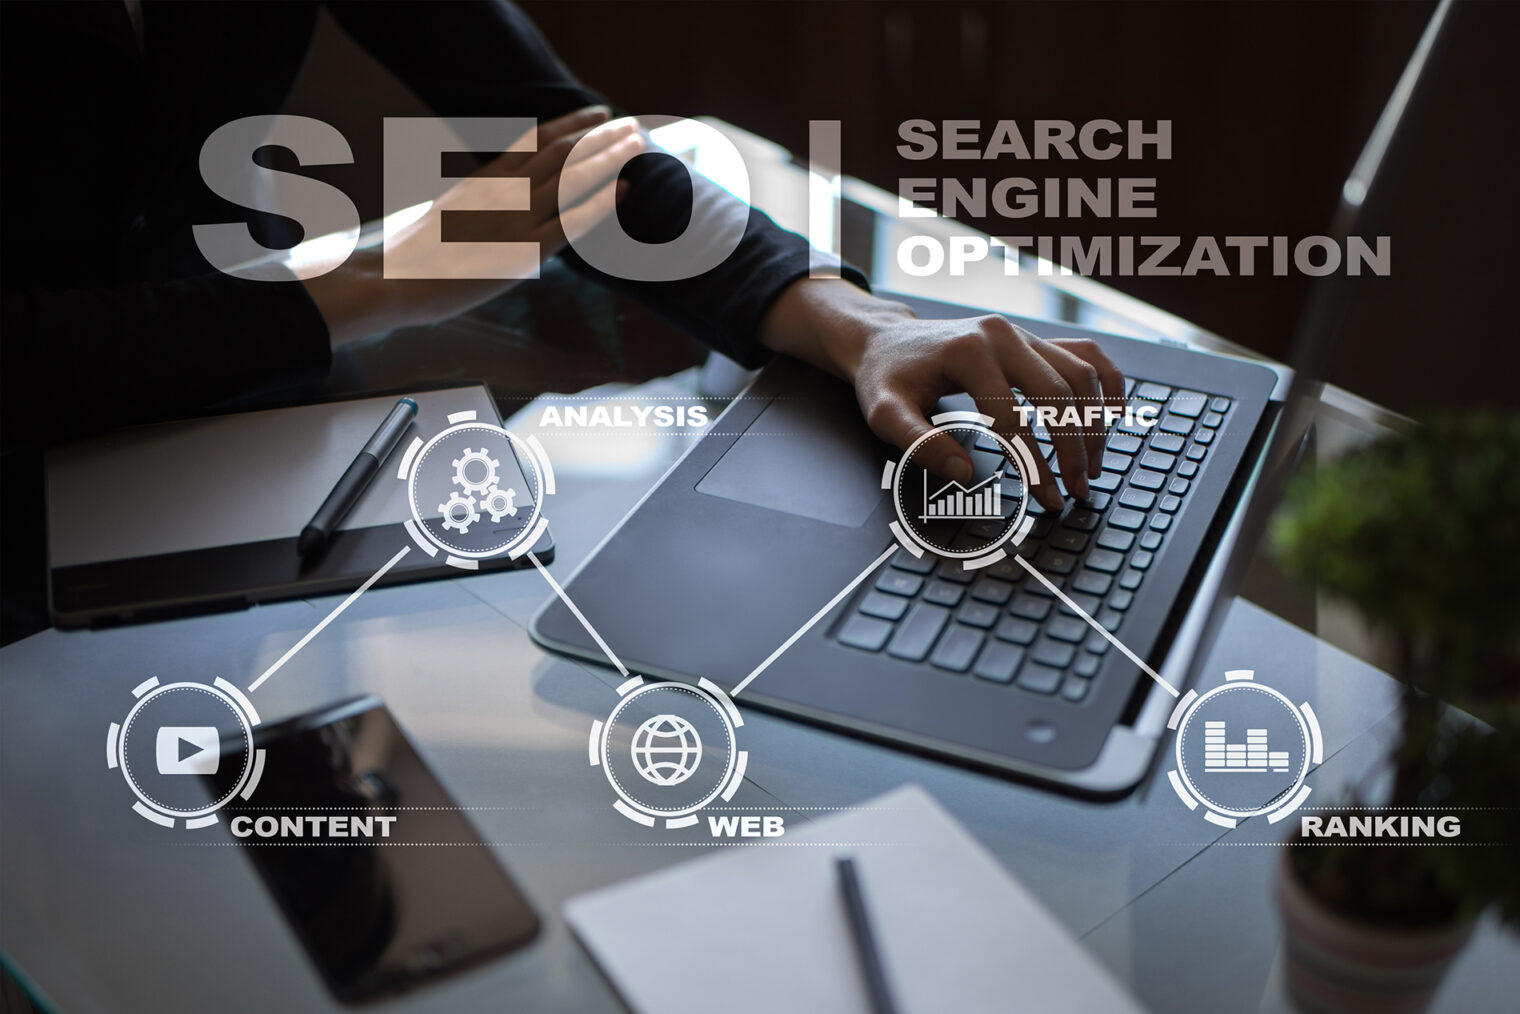 How Can I Help My Website Get Ranked Higher For Searches?